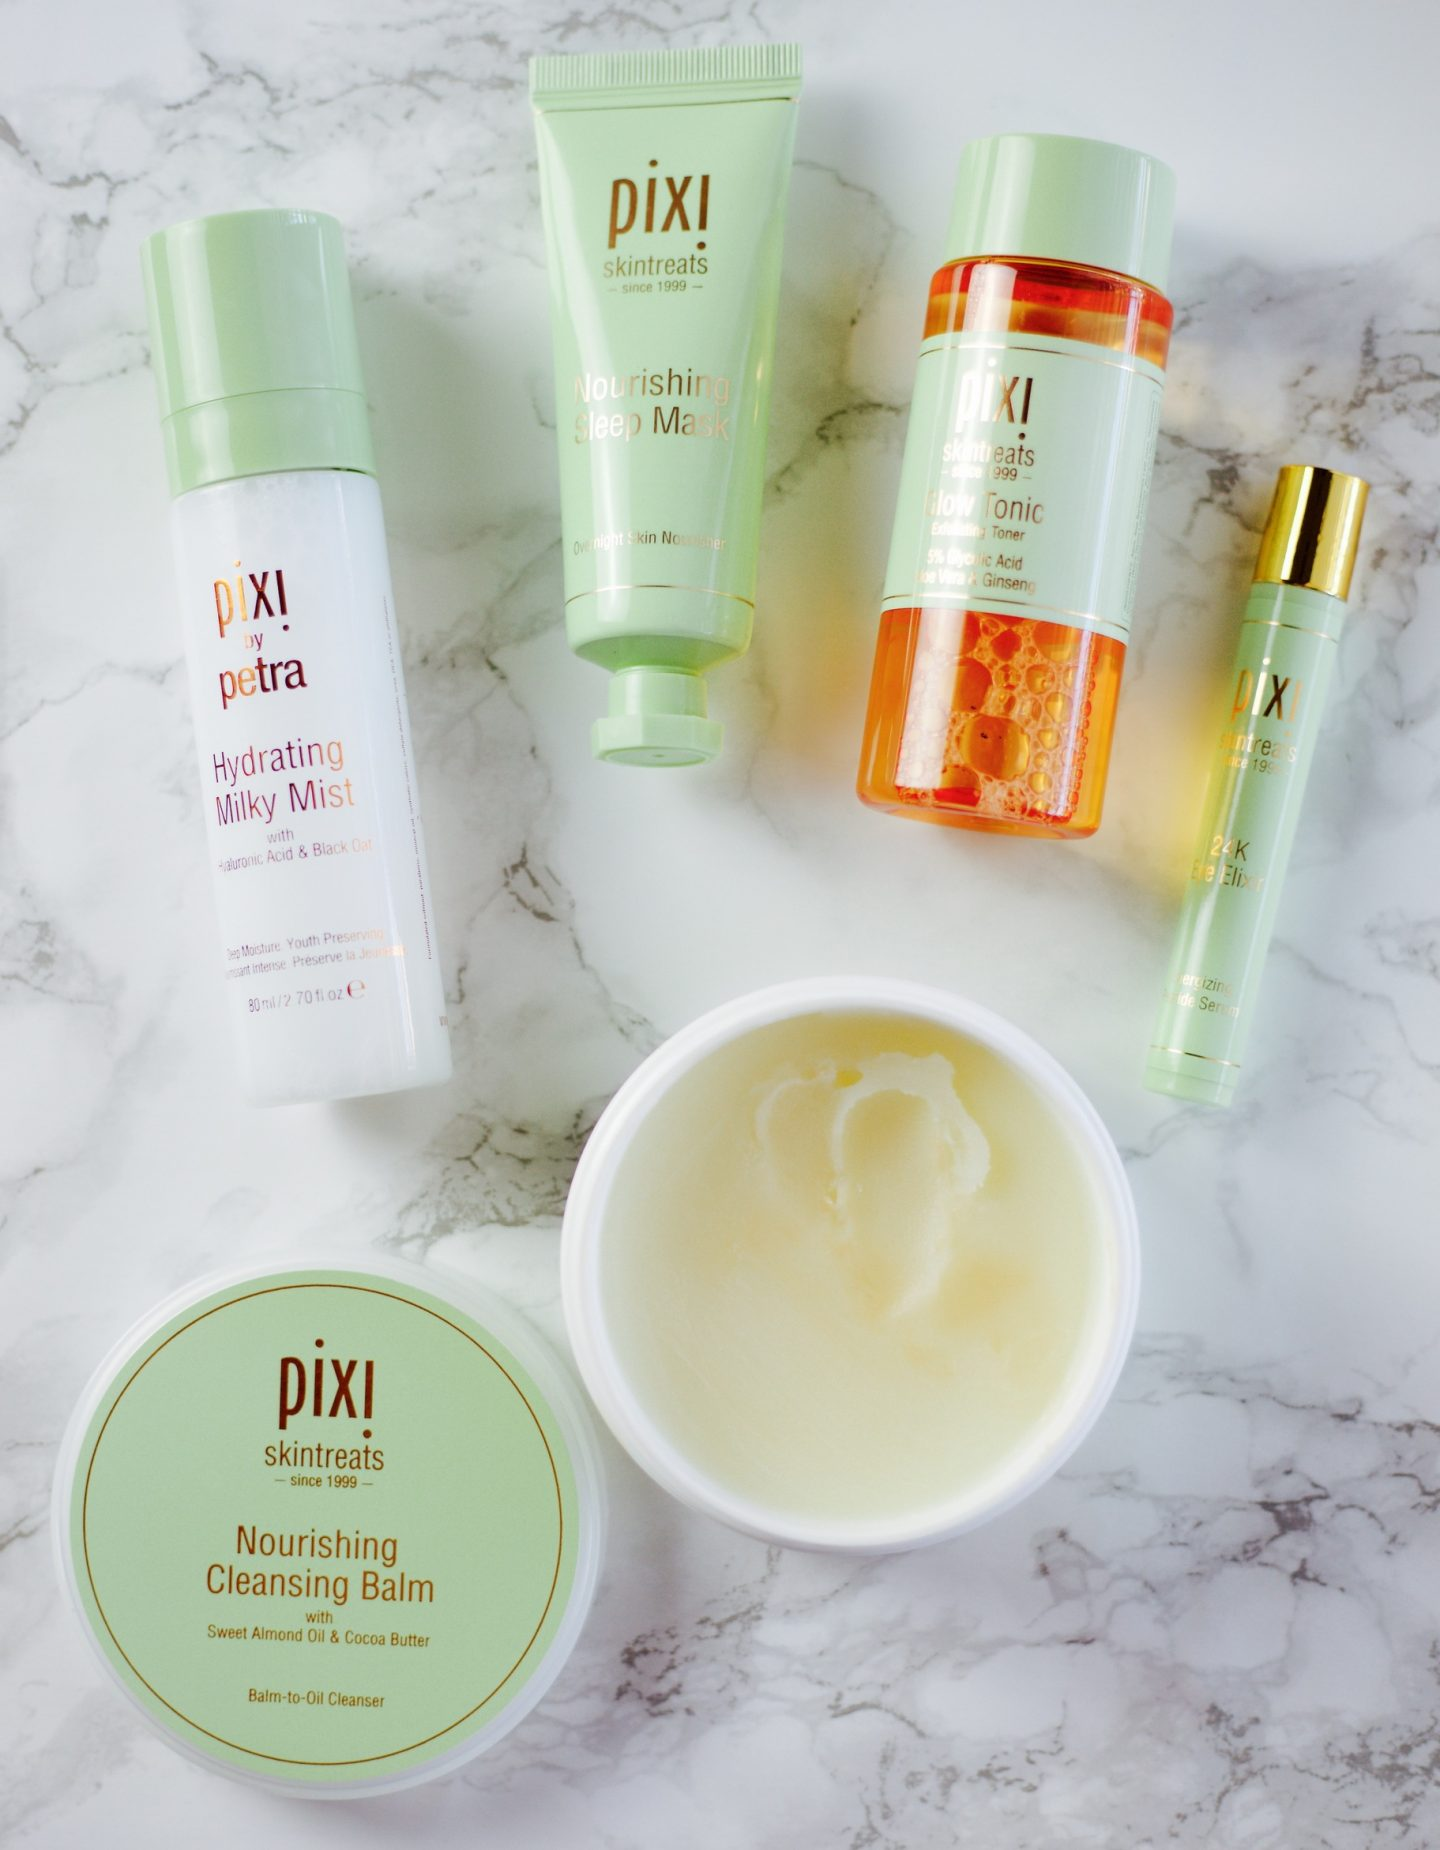 Have to find Pixi products, reviews, prices, and the best Pixi product to buy? Turn to Total Beauty. Beauty product reviews are here!